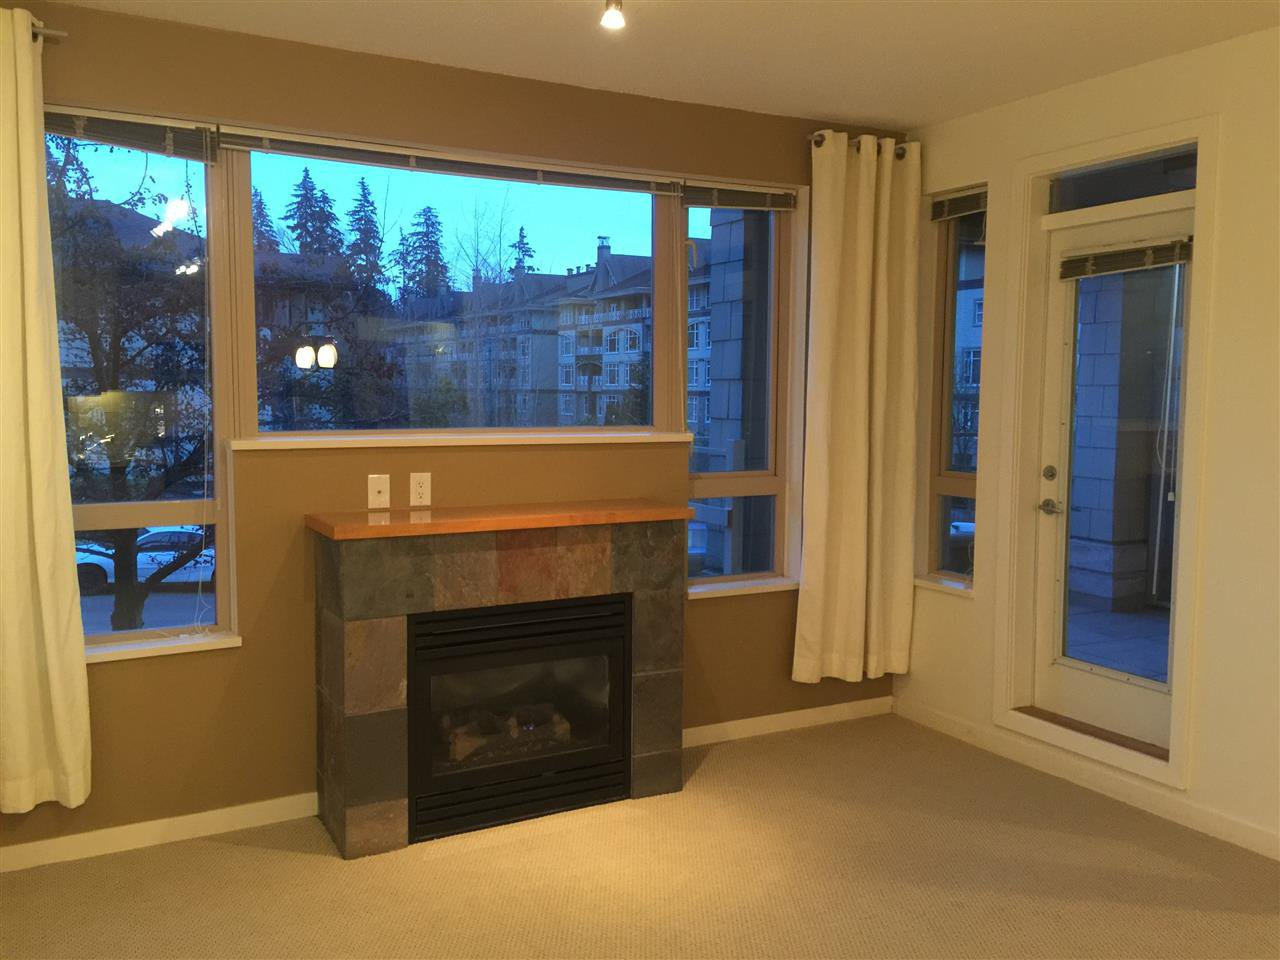 """Photo 8: Photos: 221 530 RAVENWOODS Drive in North Vancouver: Roche Point Condo for sale in """"SEASONS SOUTH AT RAVENWOODS"""" : MLS®# R2130973"""